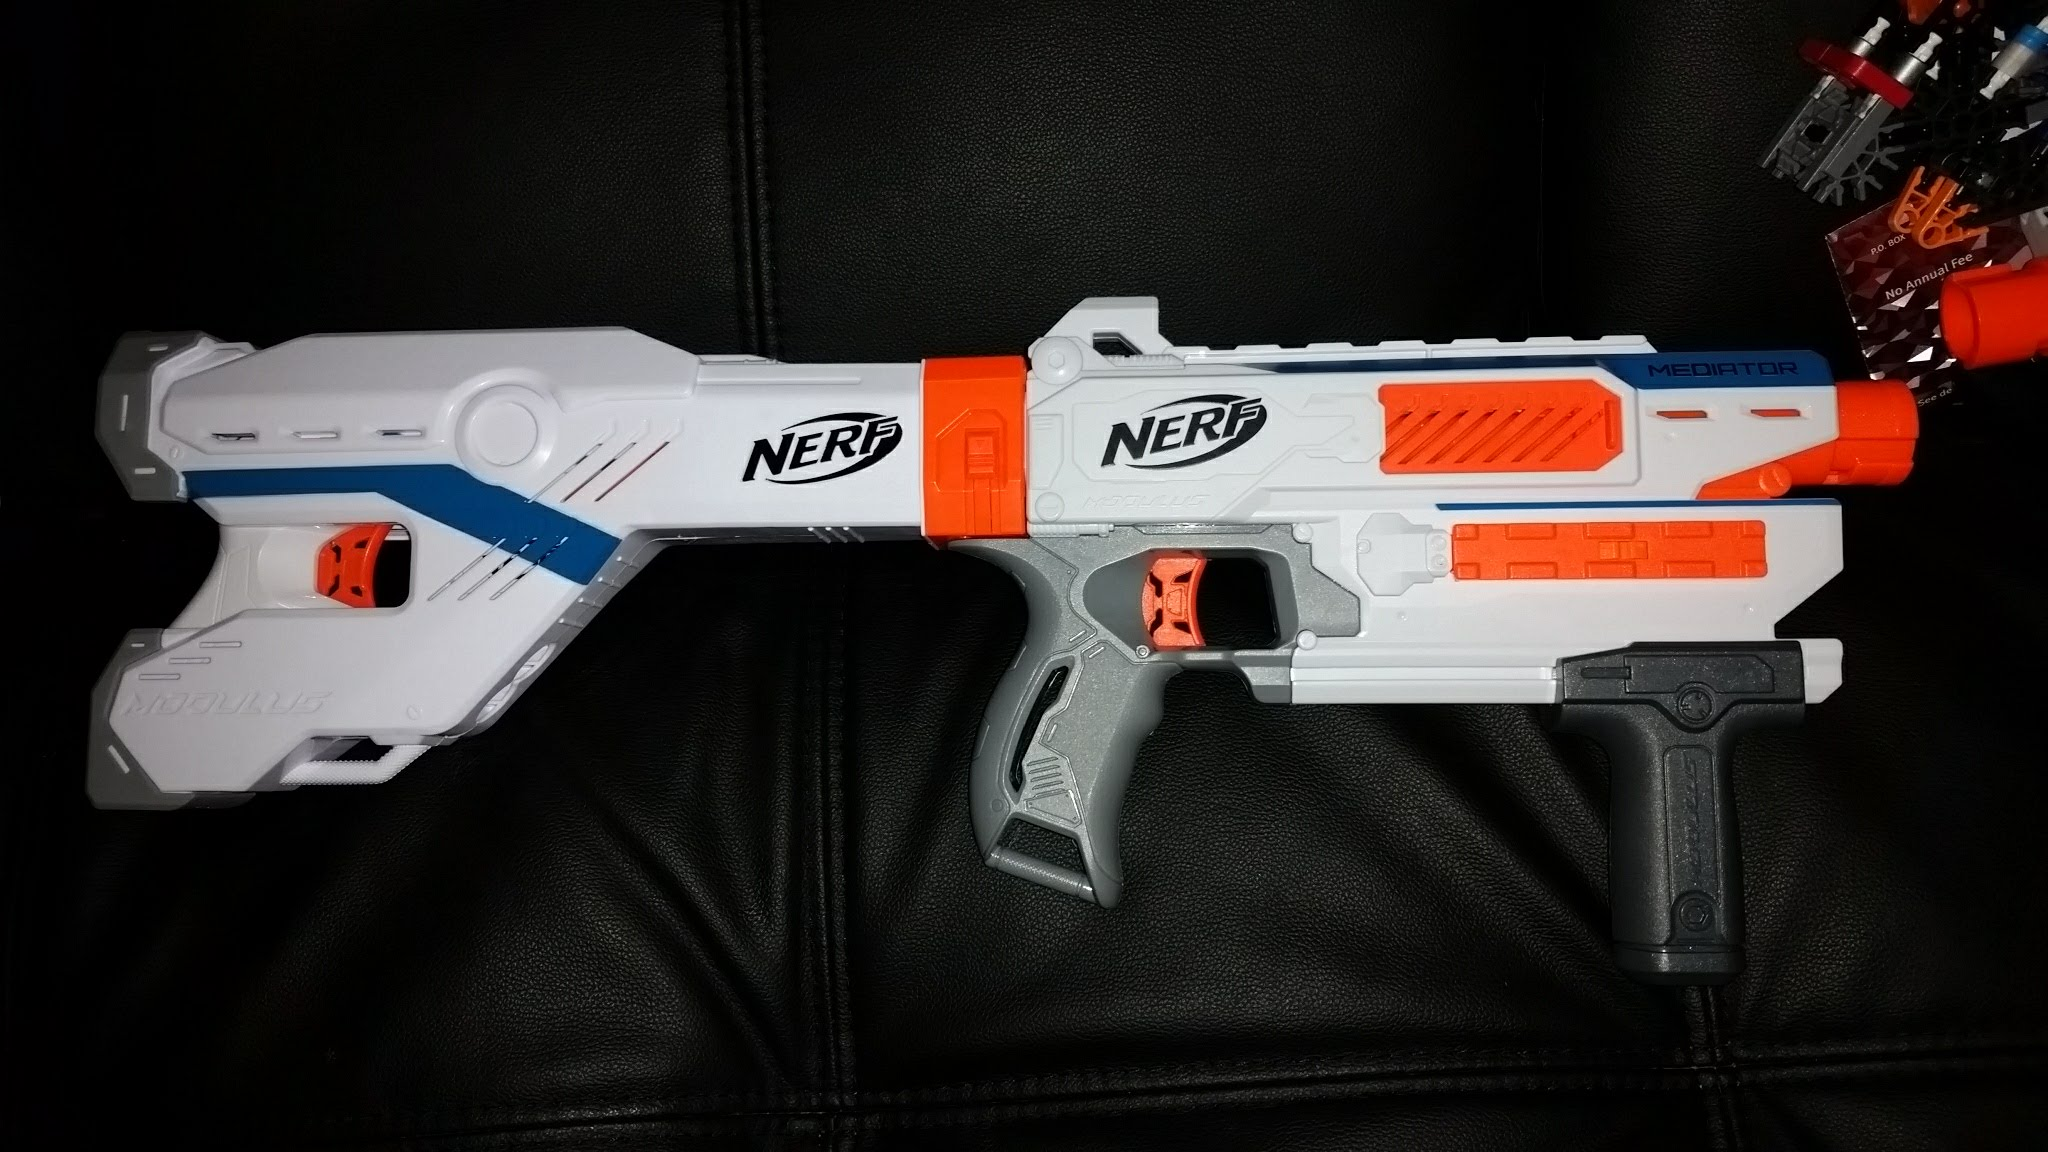 On the Mediator especially, the stock spaces everything out perfectly. With  the blaster set that far forward, there isn't any cramping in your dominant  arm, ...